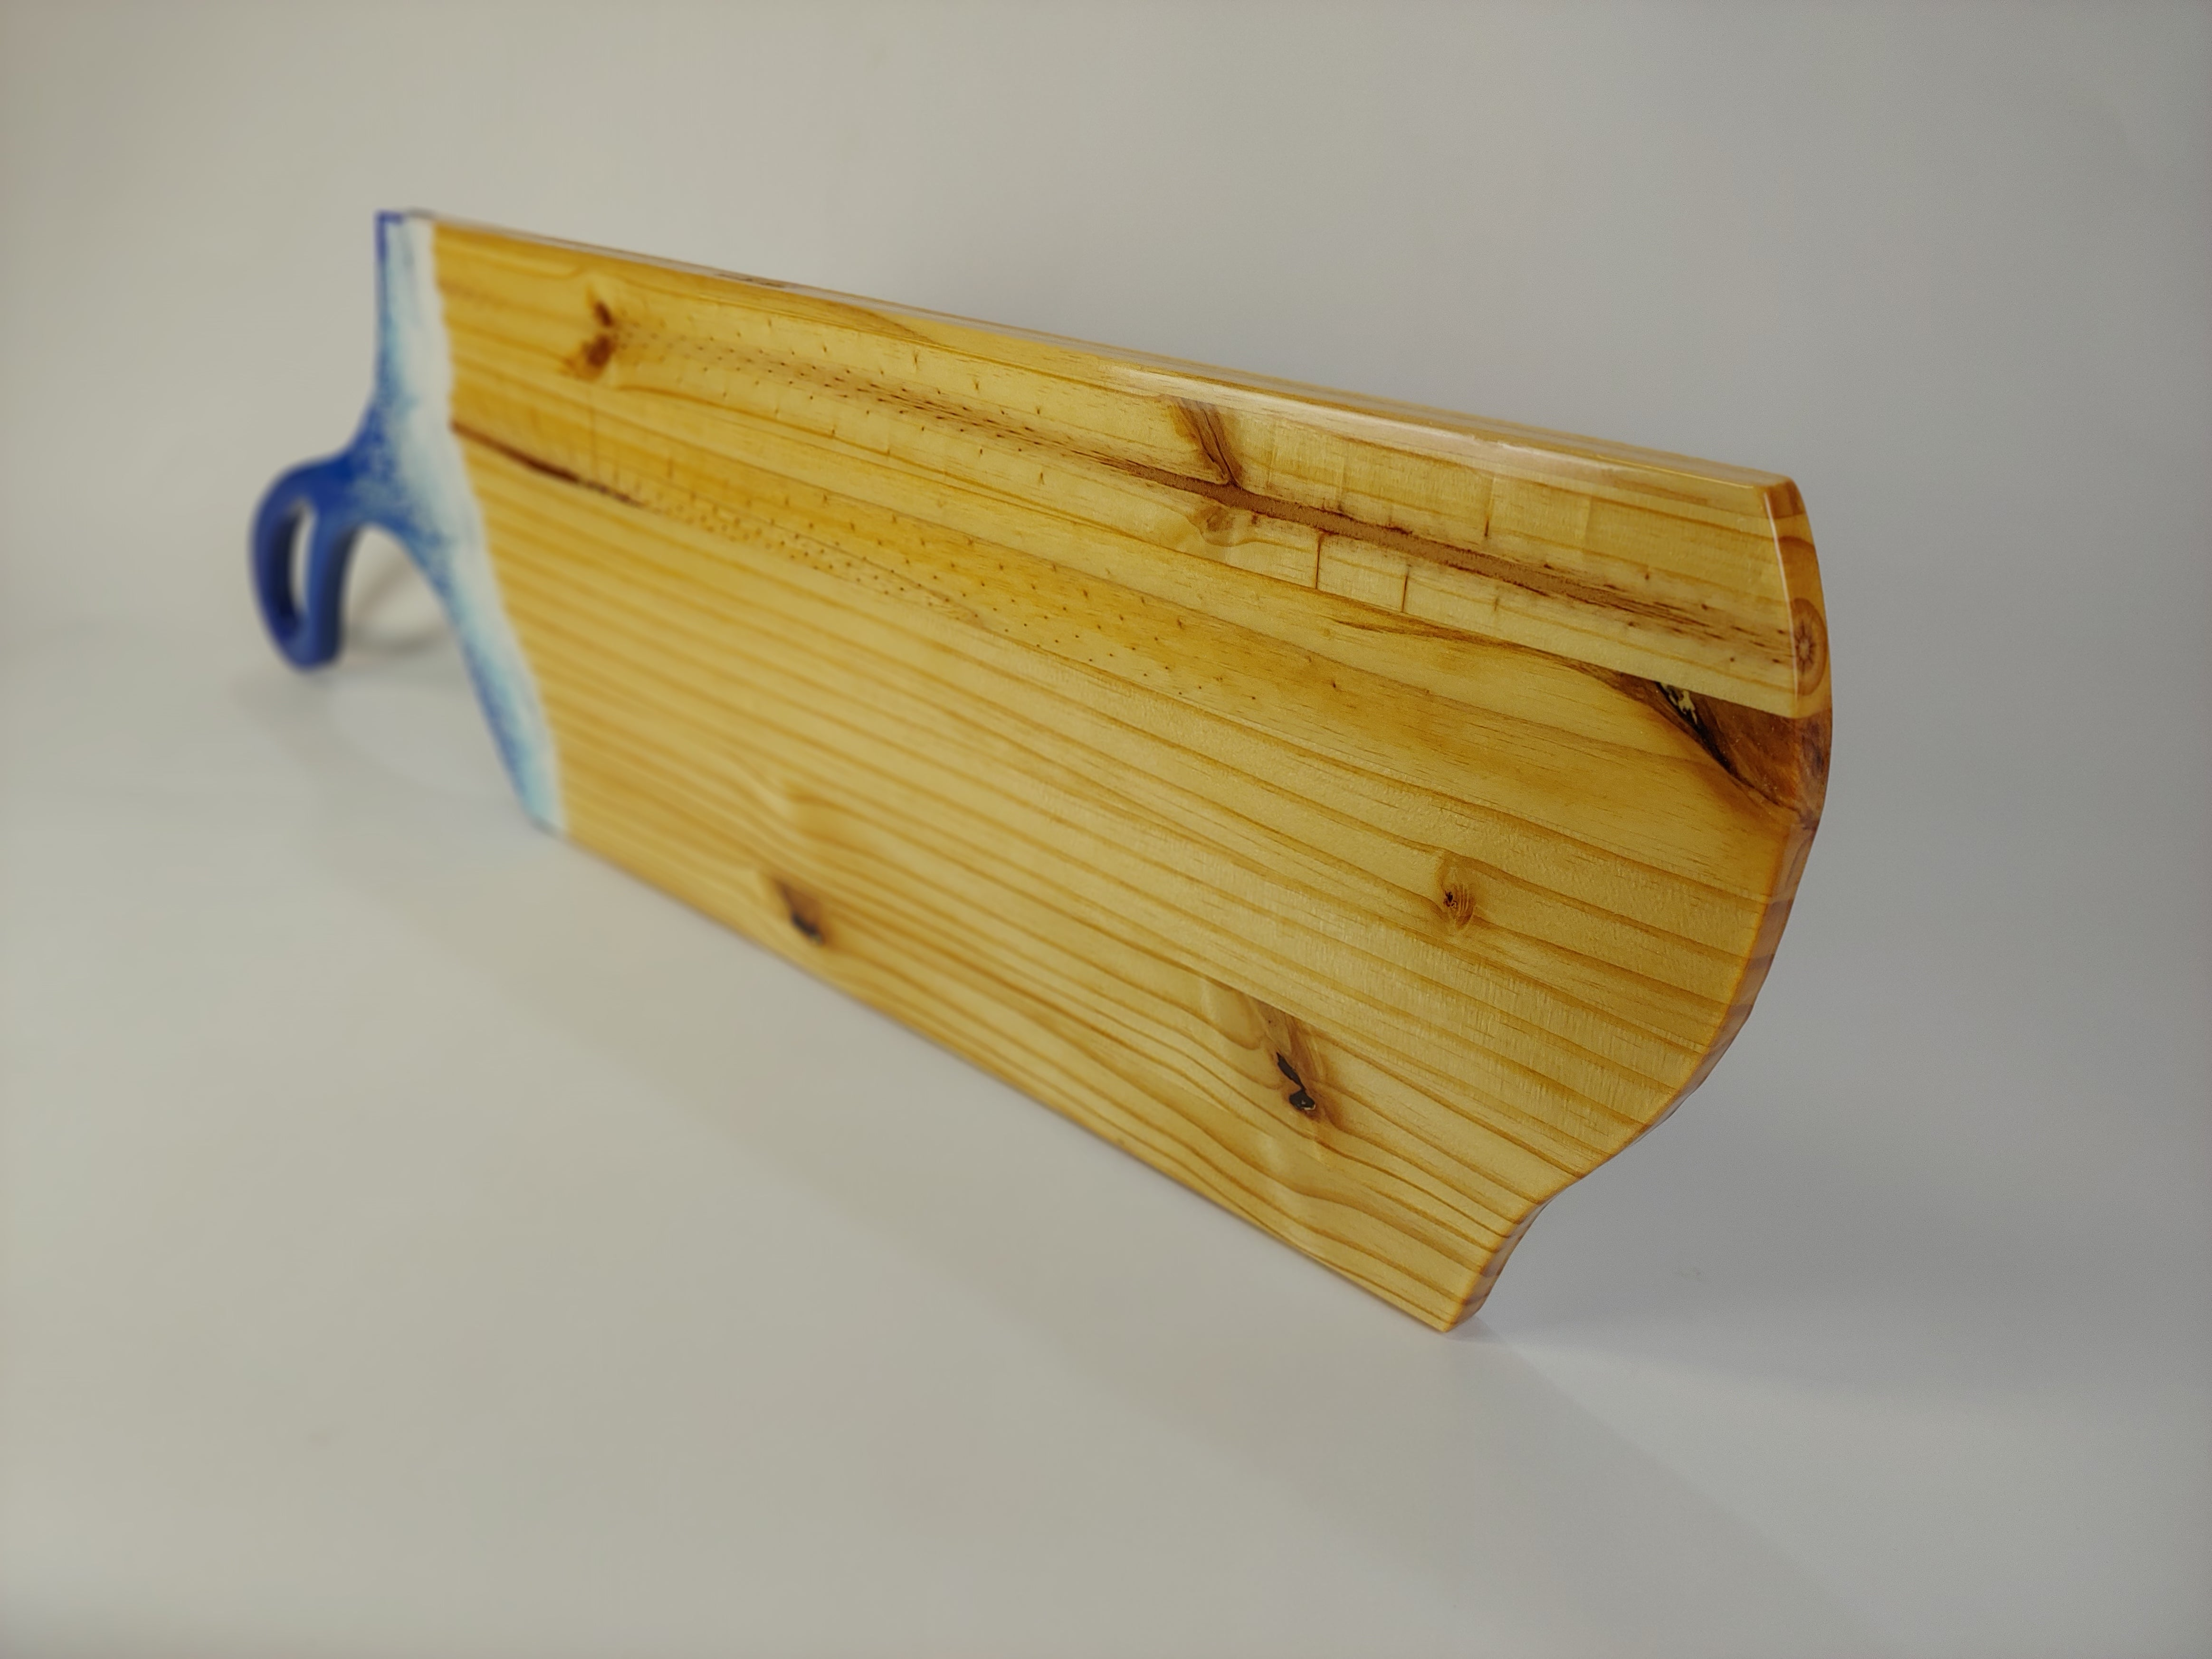 Ocean Wave Charcuterie Board with Long Handle